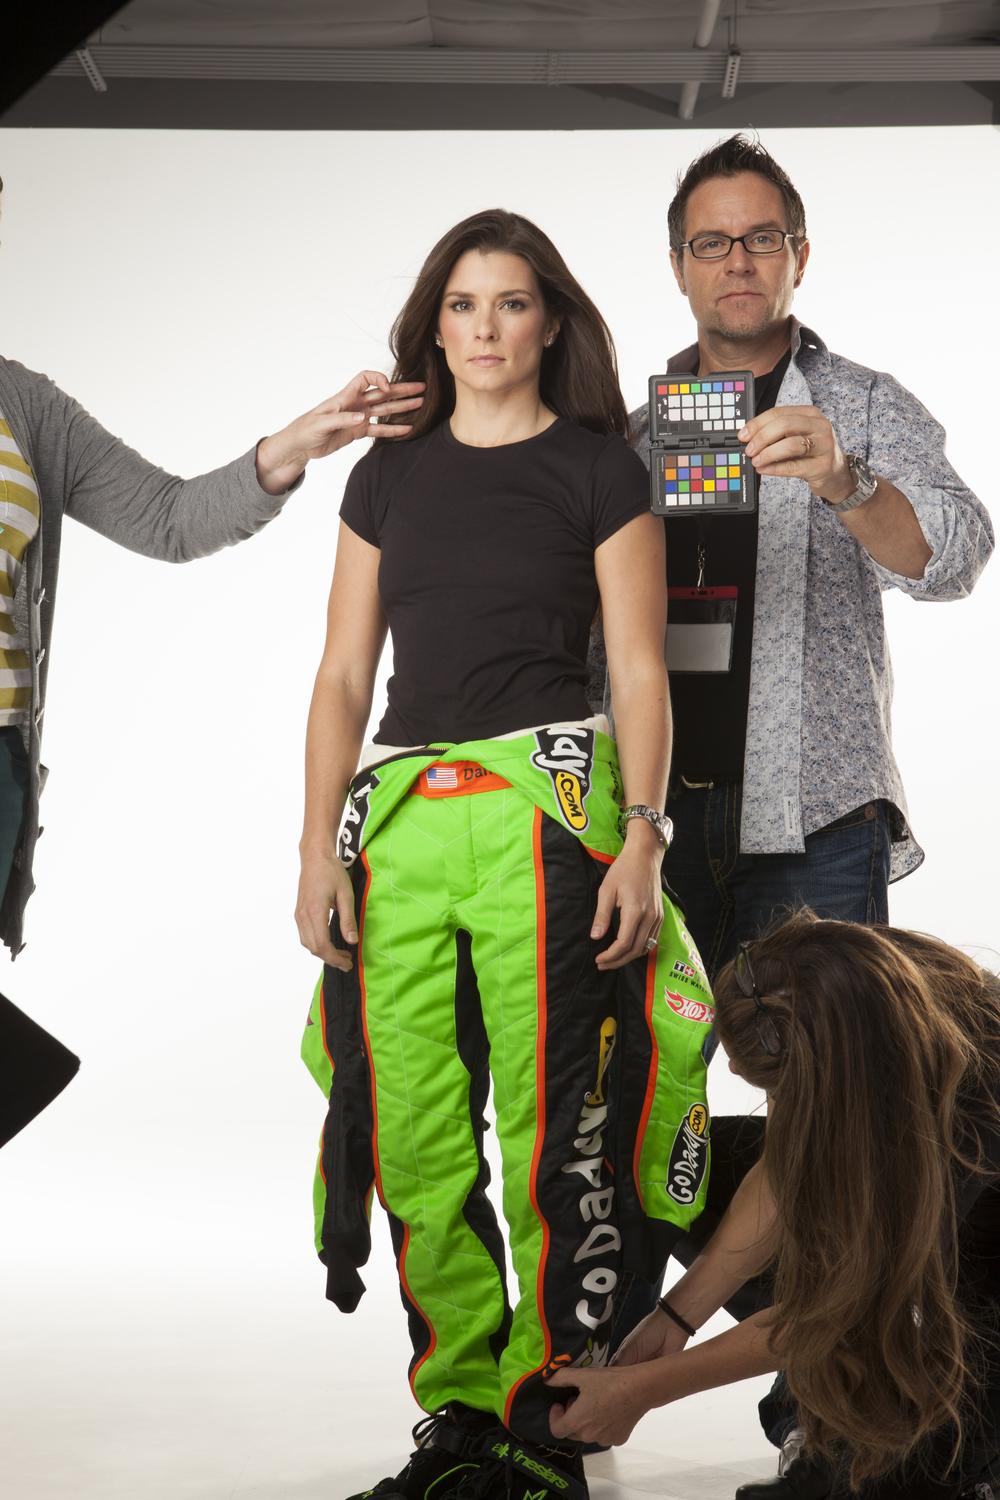 Rusing_GoDaddy Fire Suit2 0987 copy.jpg